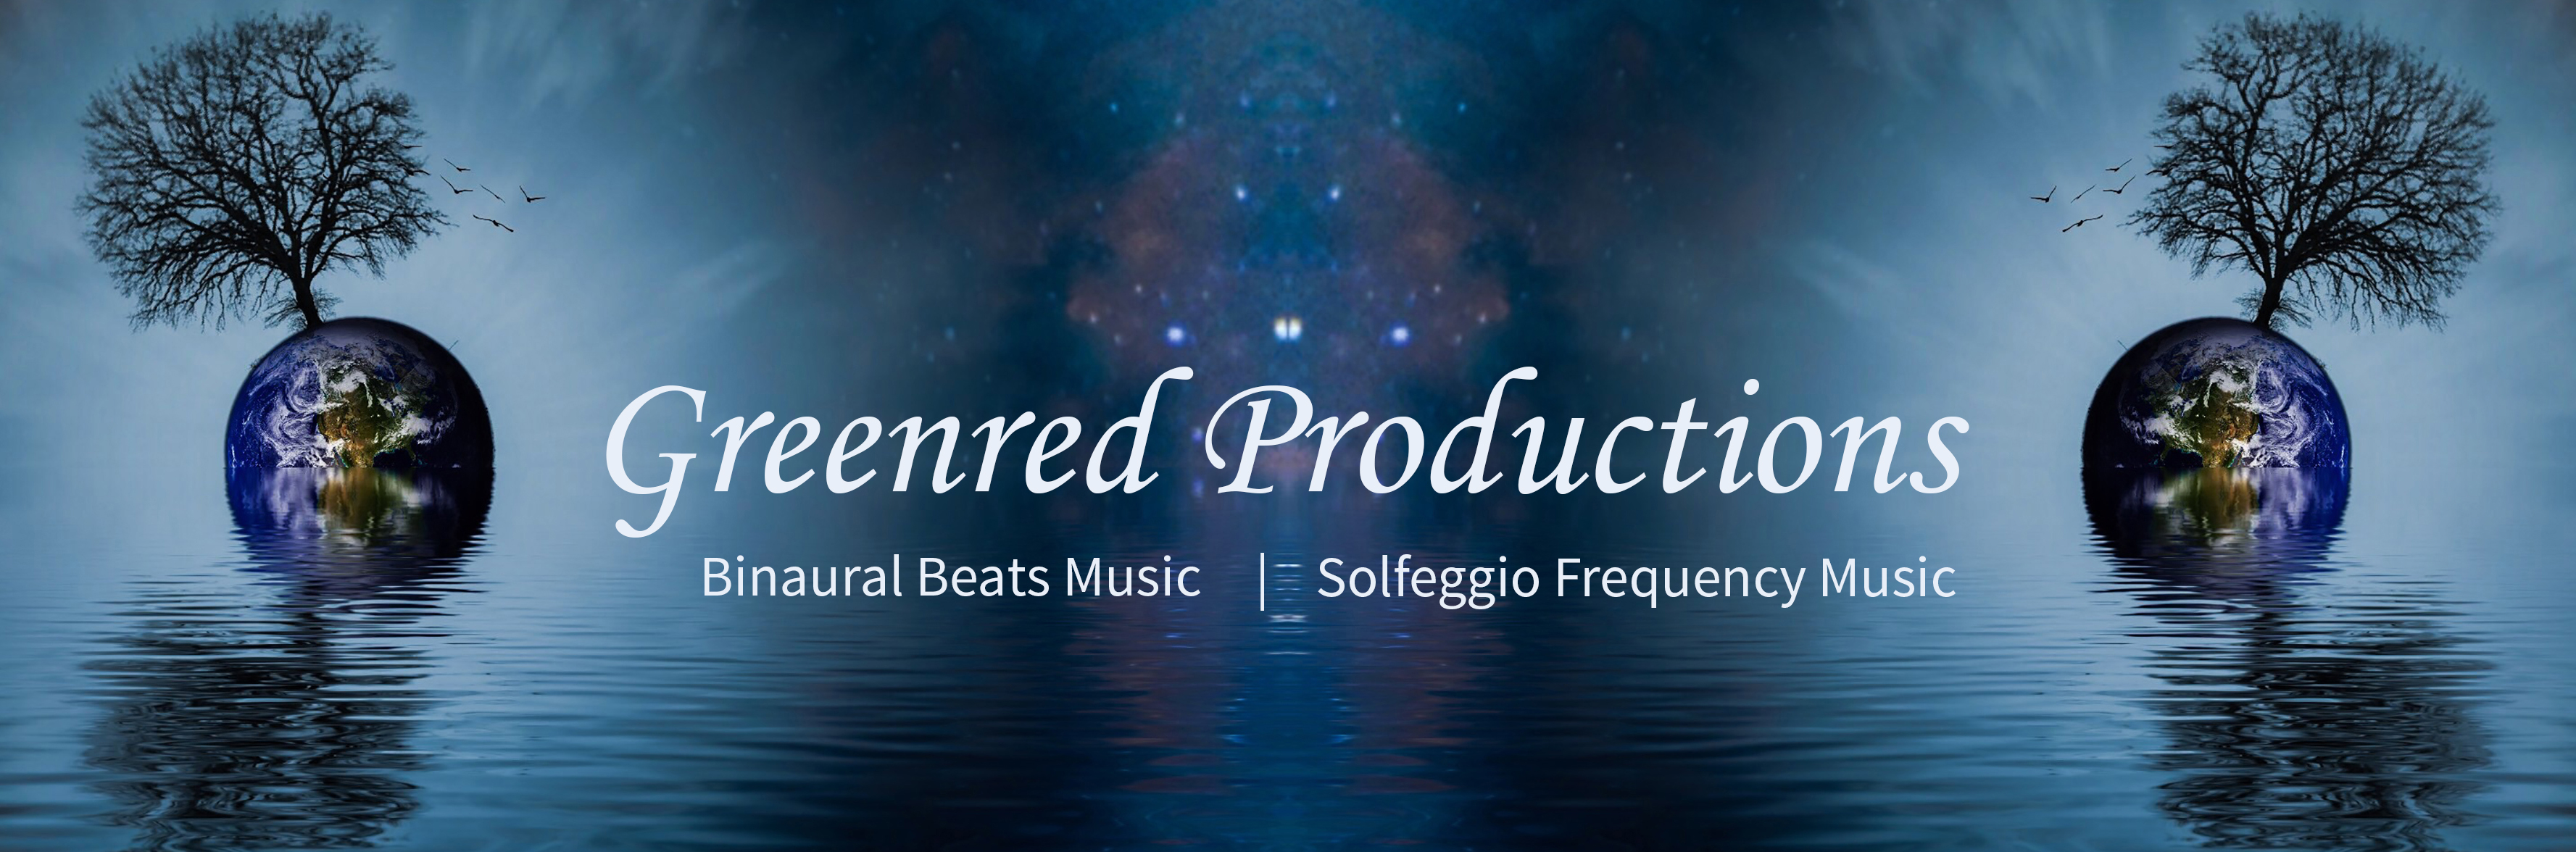 Greenred Productions - Relaxing Music | Best binaural beats